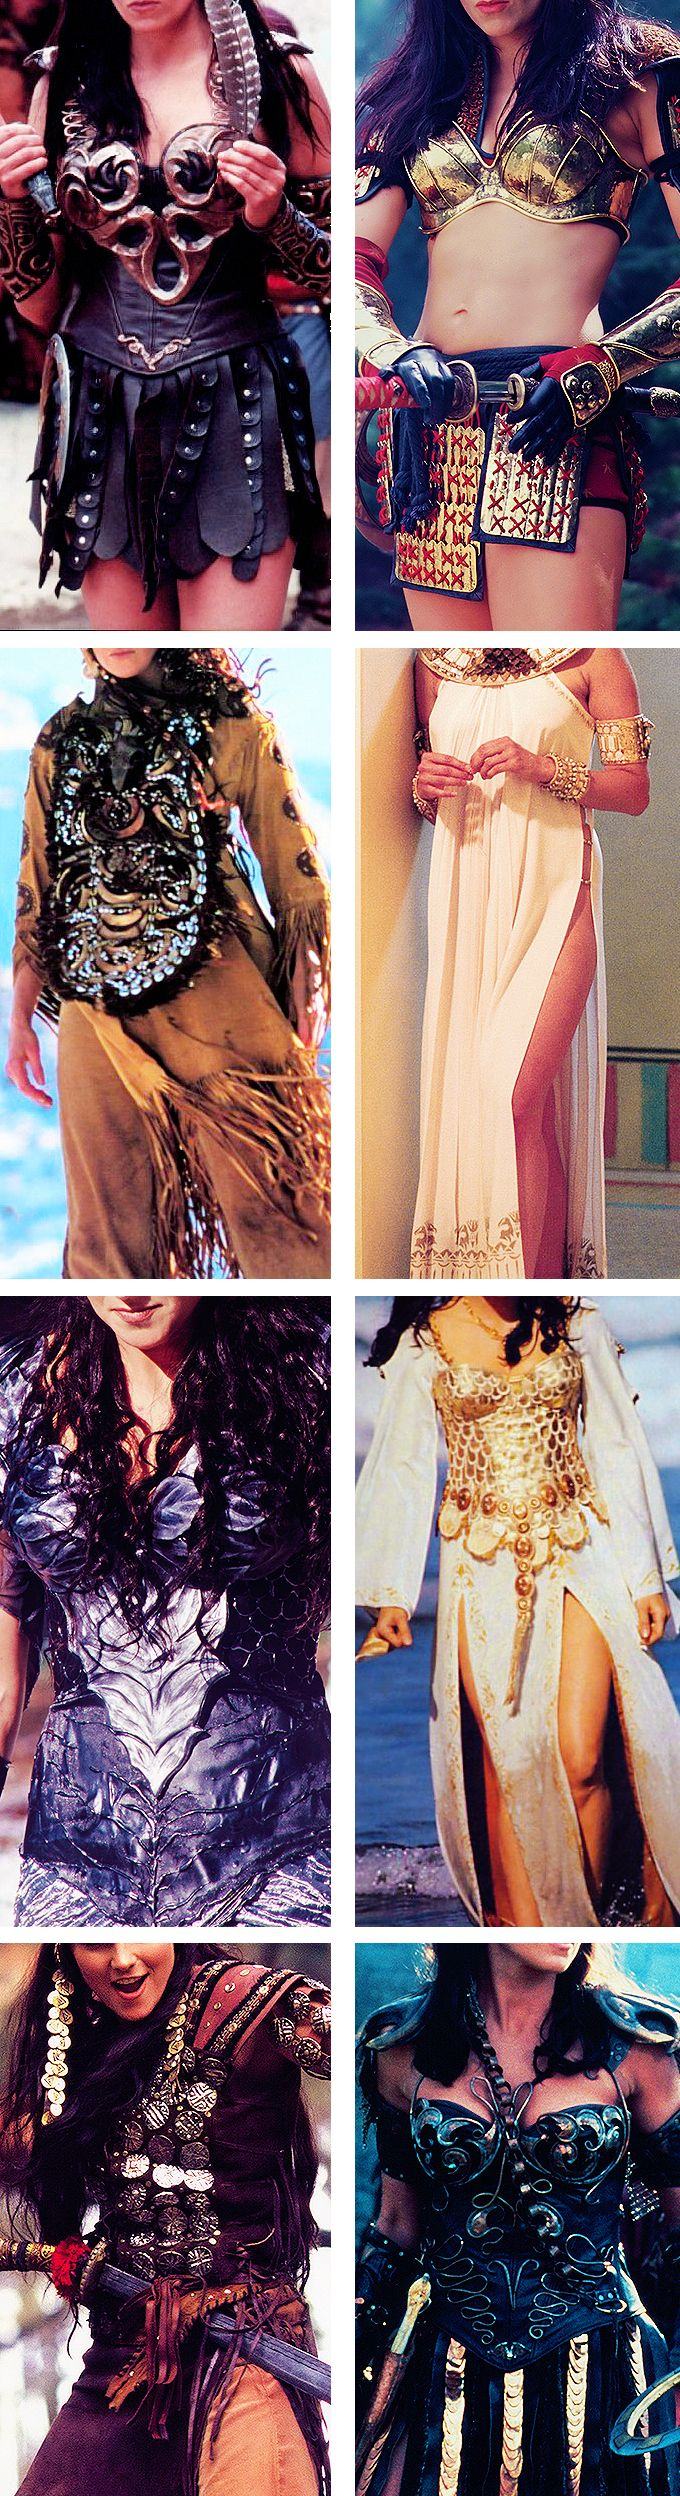 Xena + Costumes. I love the costumes on this show